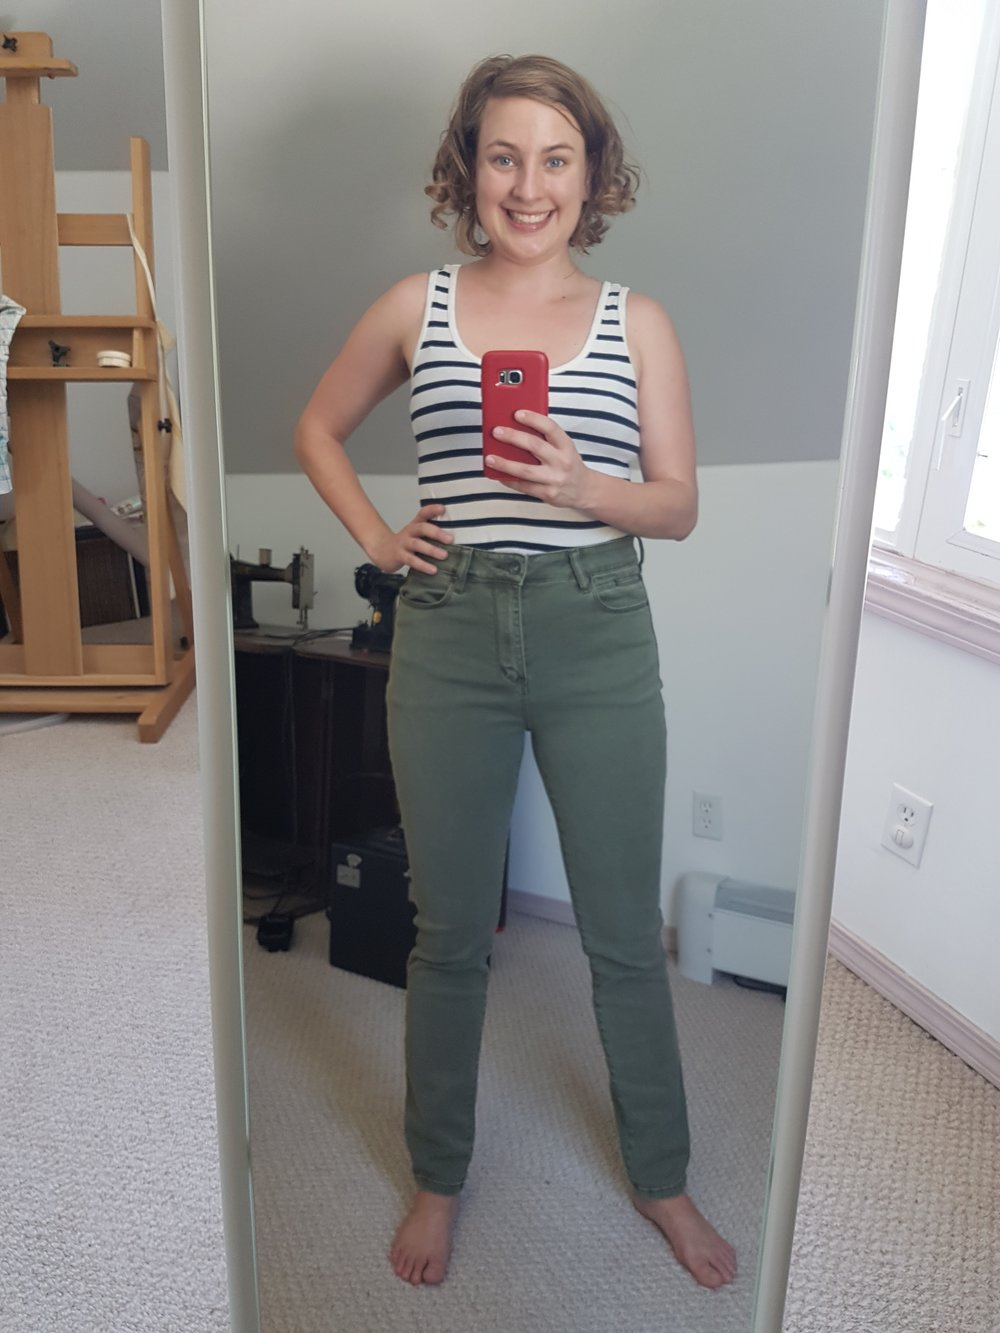 Here they are, my new (to me) jeans! They look okay from the front but...